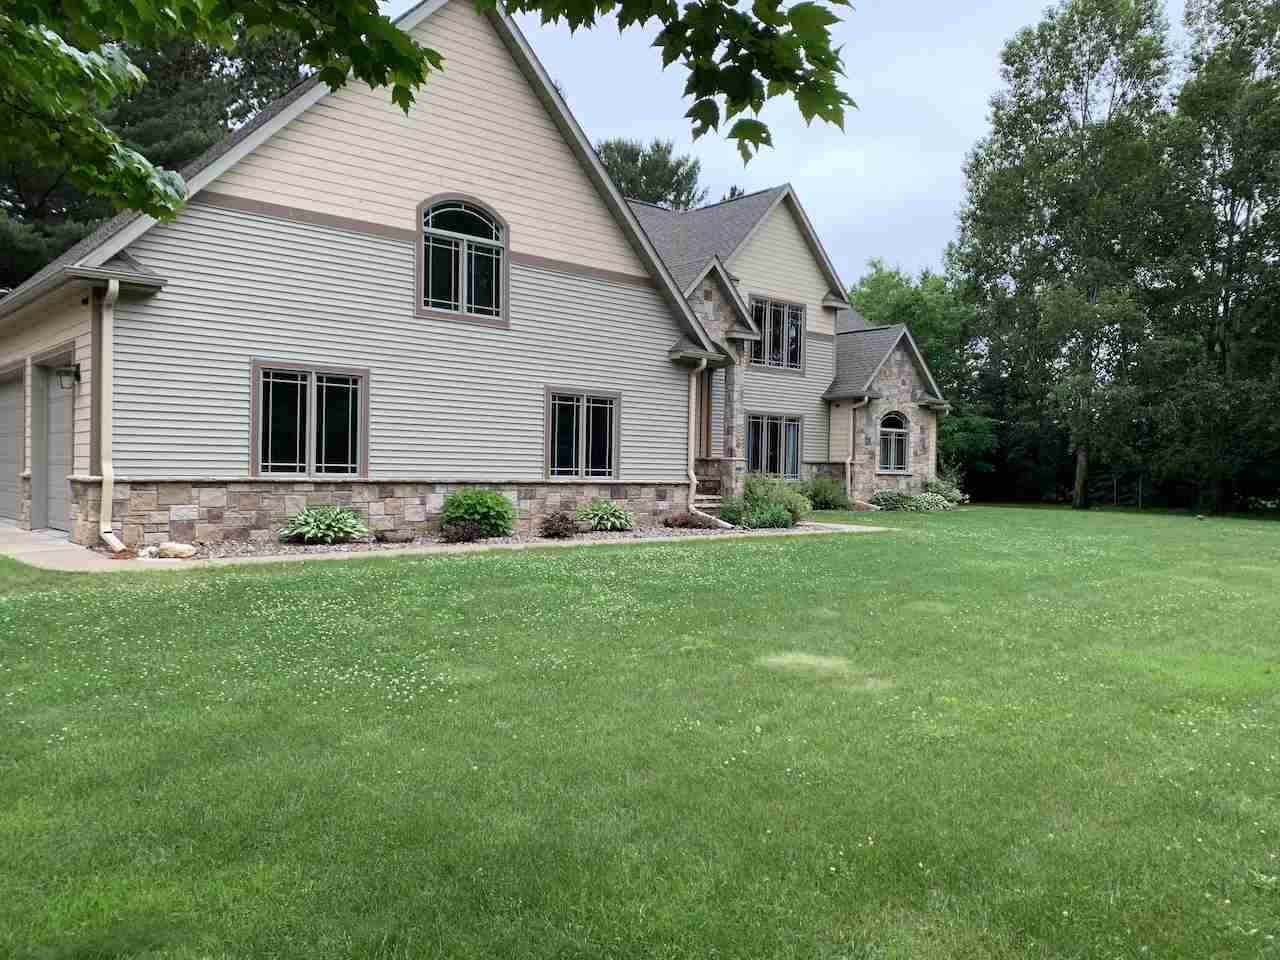 N821 Majestic Lane, Merrill, WI 54452